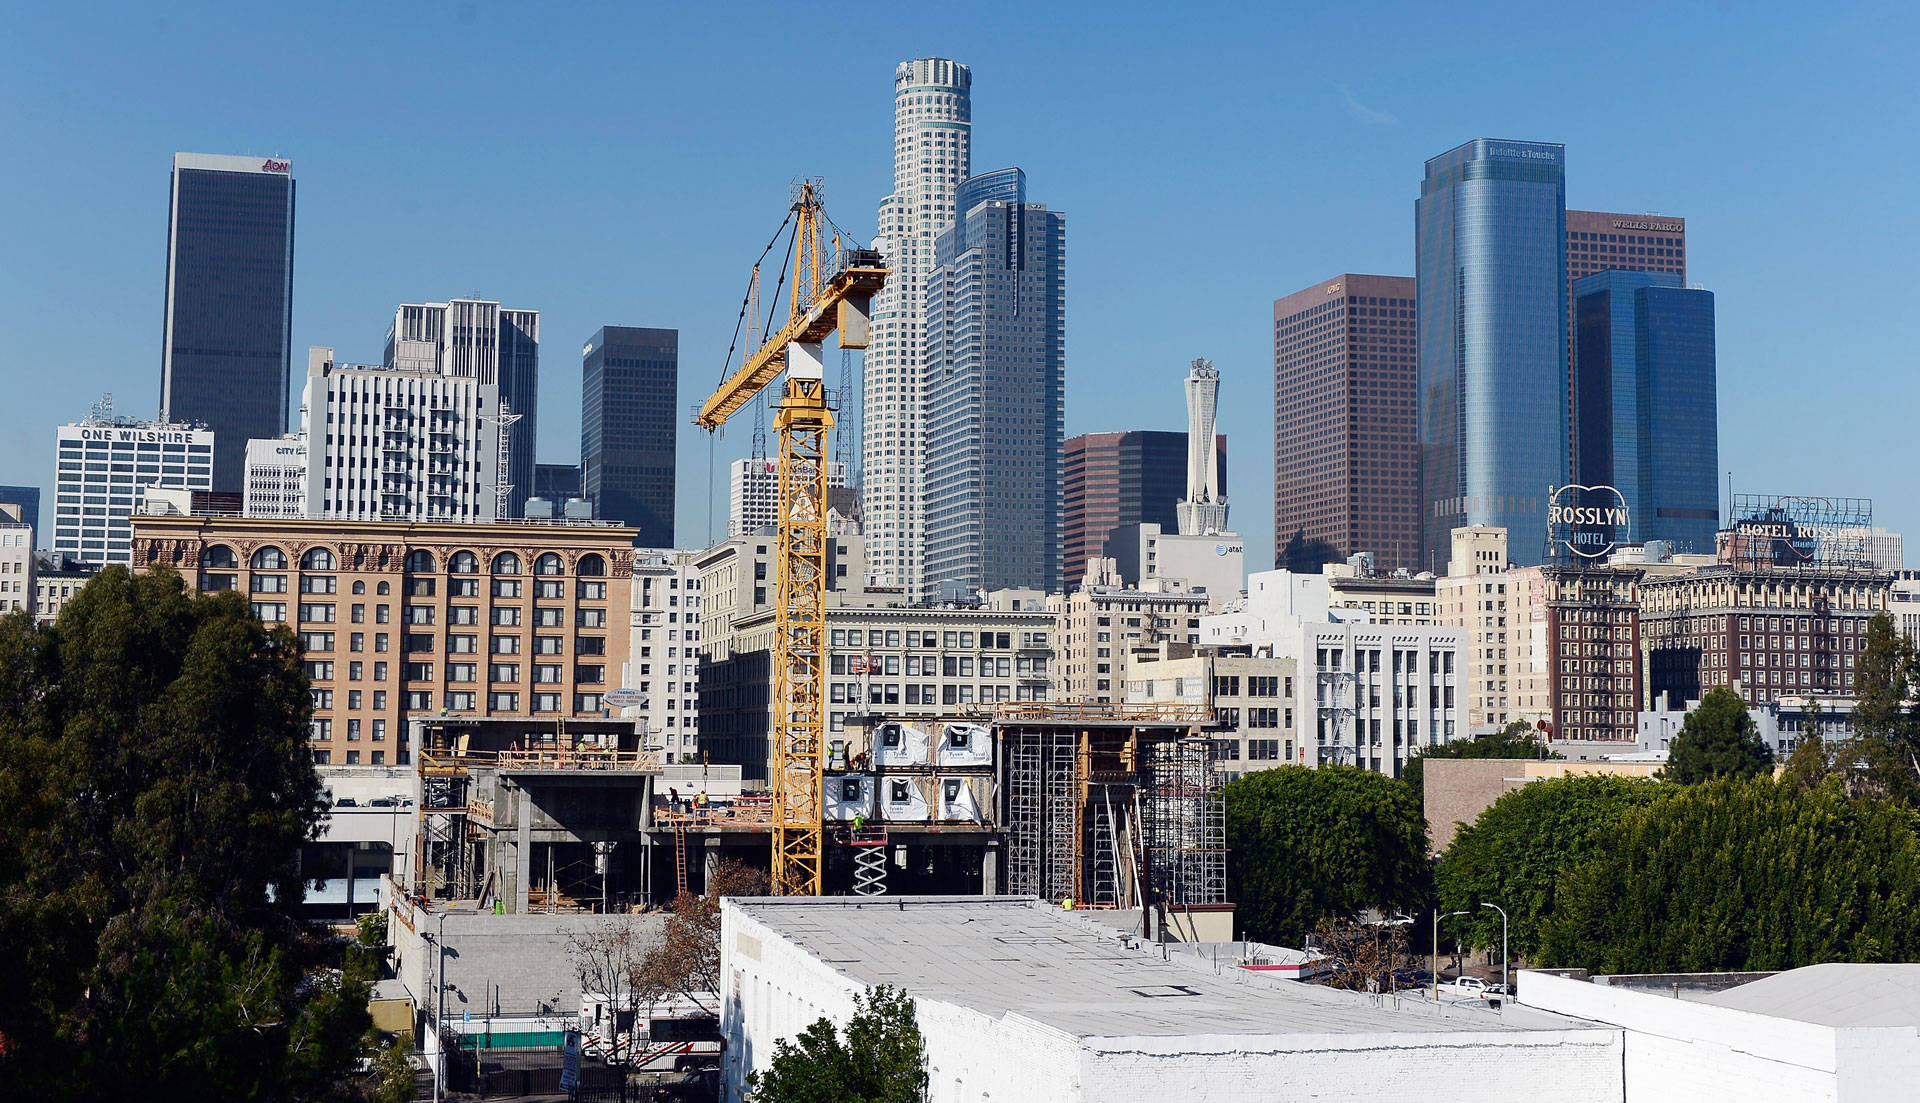 Amid Affordability Crisis, L.A. County Looks to Build Up Housing Stock